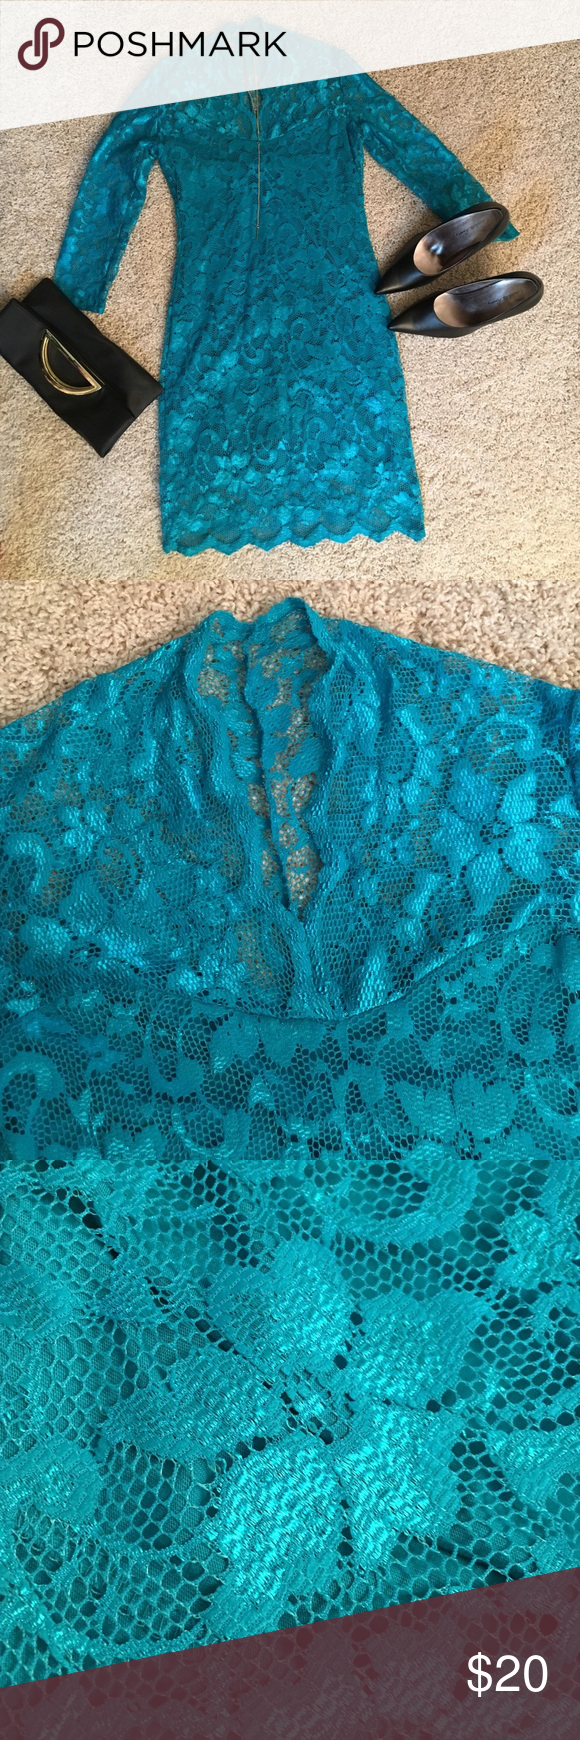 Brand New Teal Lace Dress Brand new never worn! Perfect condition, I got it to wear to a Christmas party and just went with another option. Very stretchy material says size 8 on the tag but would prob fit anywhere from a size 4-8. V-neck with a little scalloped collar. The bottom is also scalloped. There is a lining sewn in from the bust that creates a sweetheart neckline to about 3 inches before the bottom. Make an offer or bundle and save! Dresses